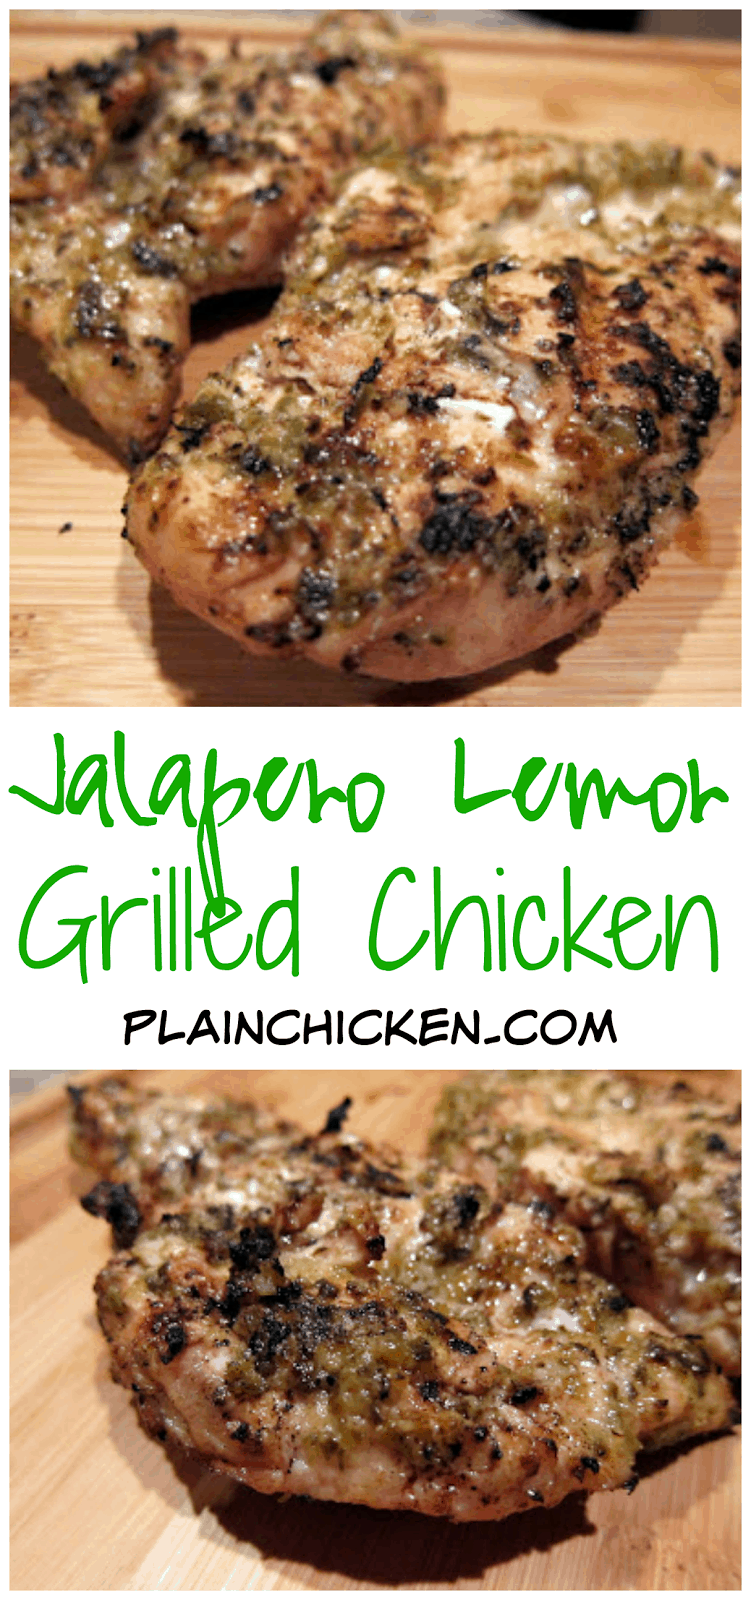 Jalapeno Lemon Grilled Chicken - chicken marinated in fresh jalapeños, lemon juice, oregano, olive oil and garlic. Inspired by our trip to Chicago and the Tavern on Rush. This chicken is AMAZING!! TONS of great flavor. Double the recipe for leftovers - great in tacos or quesadillas.